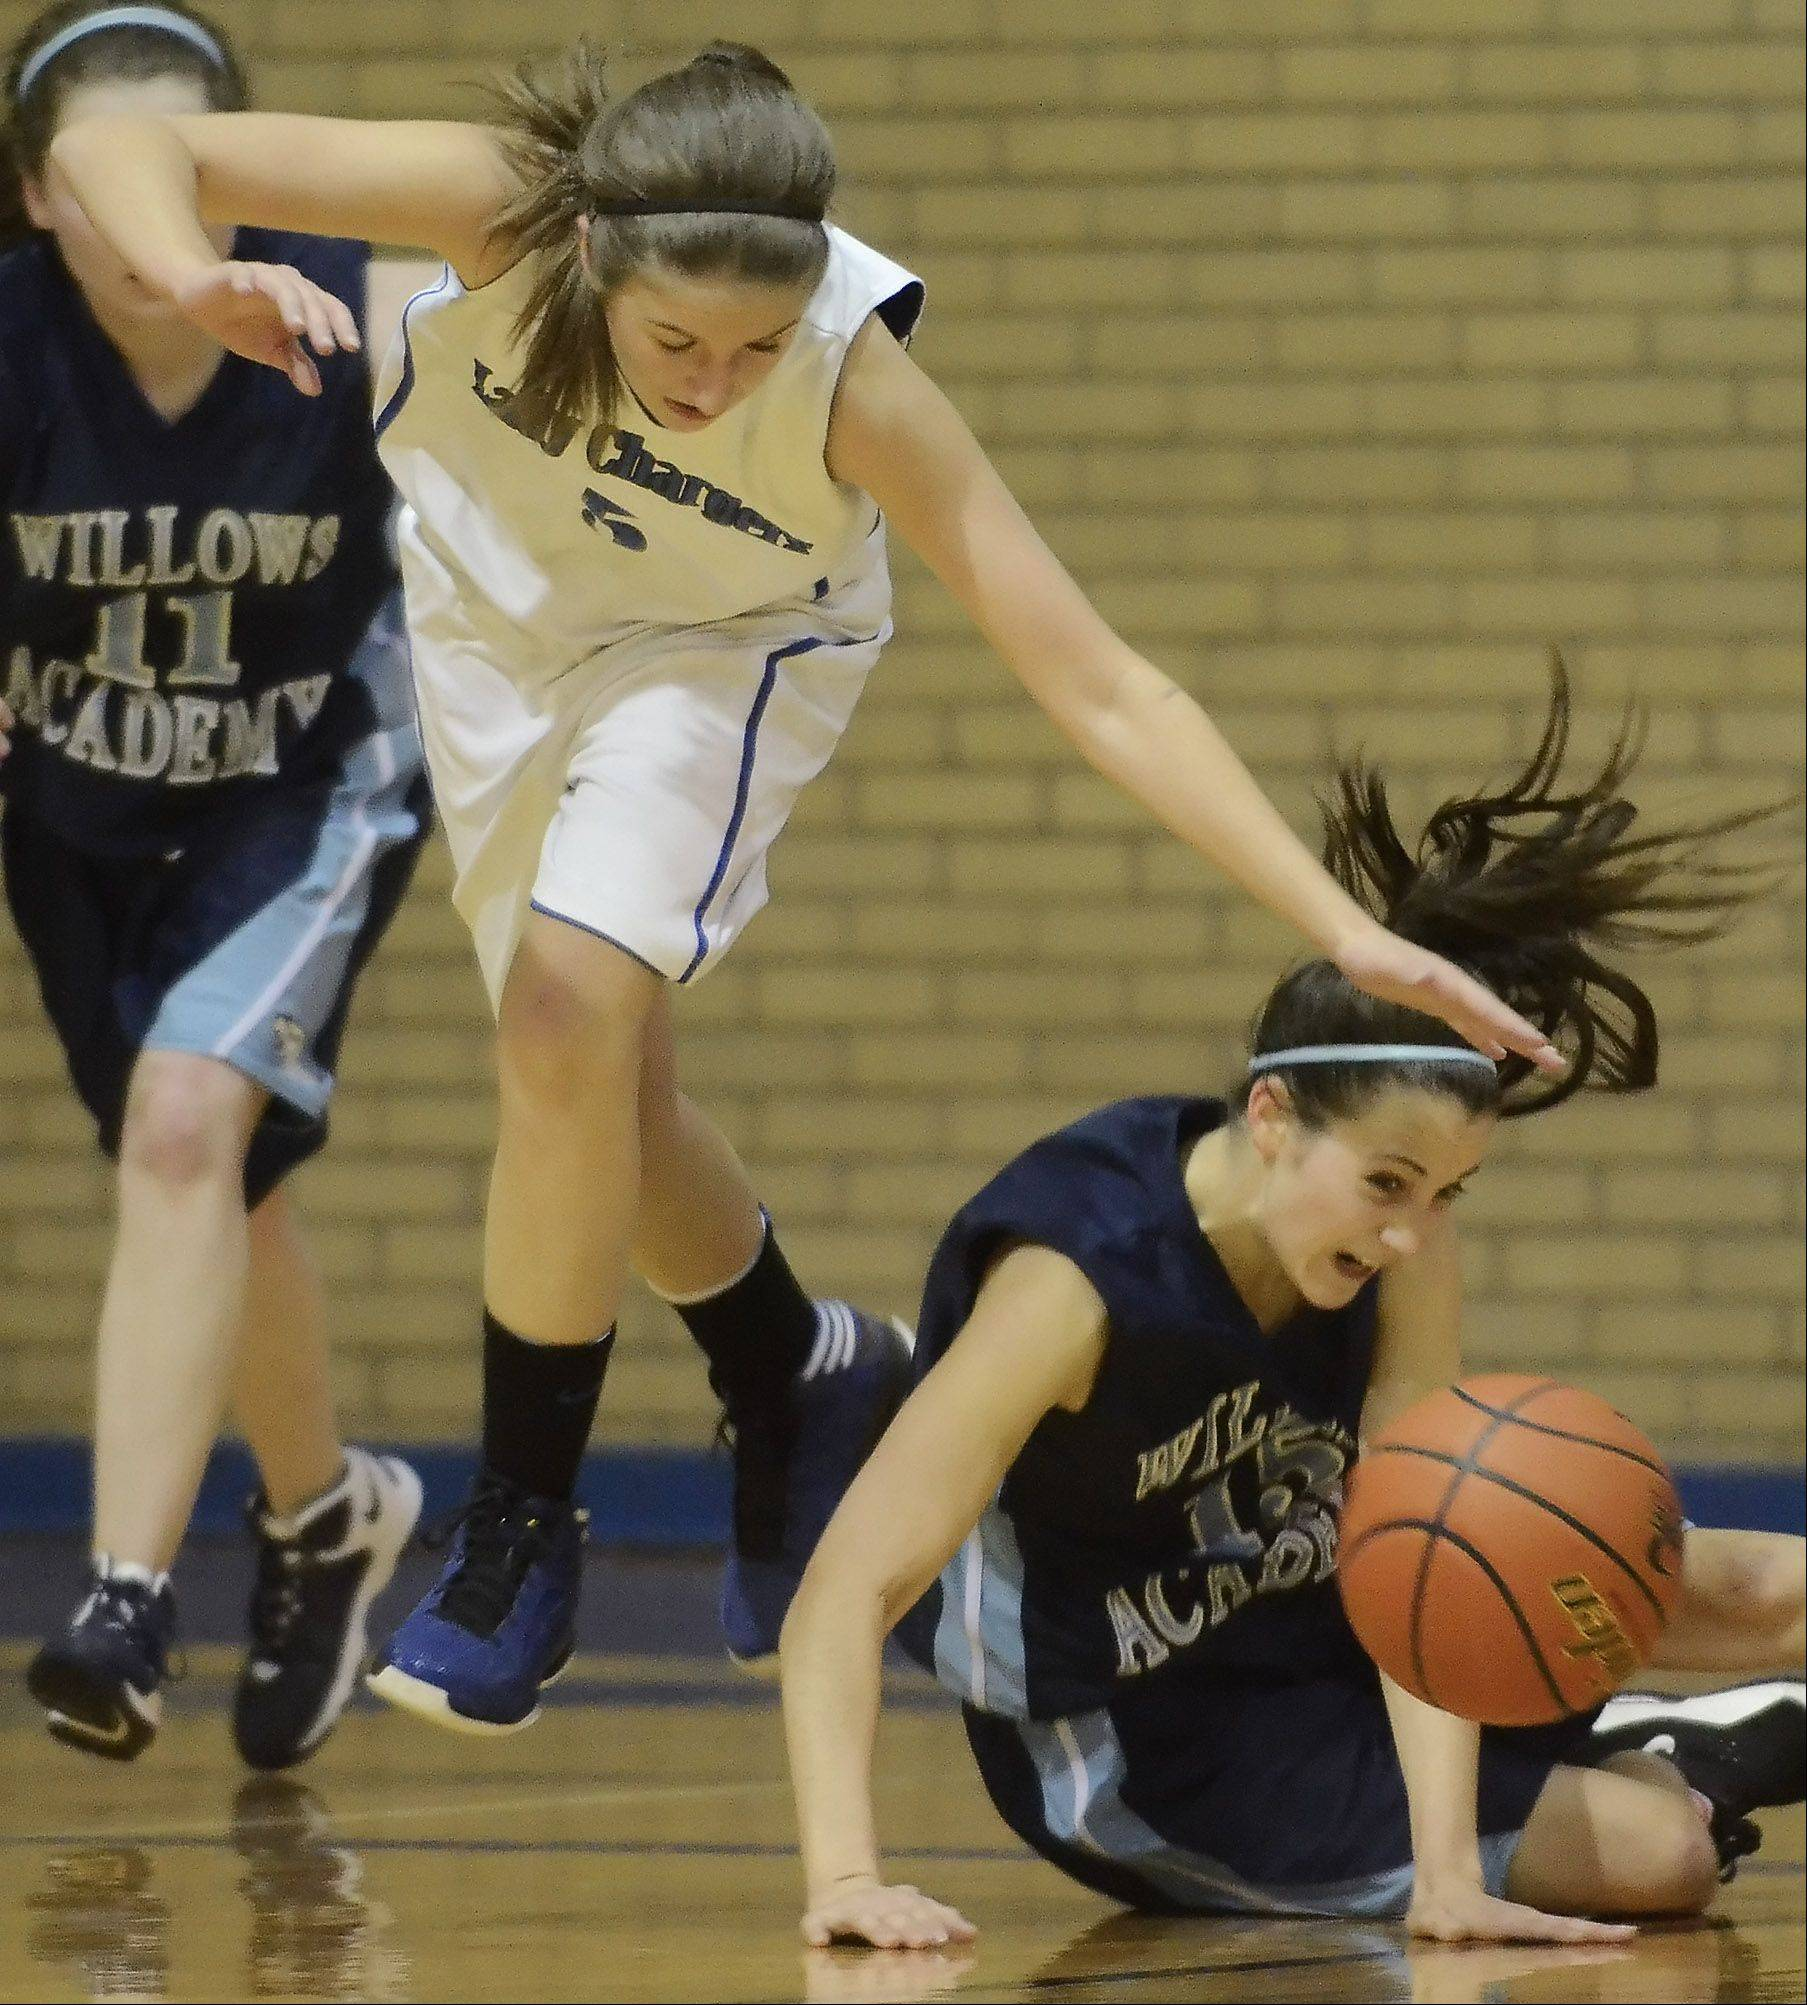 Christian Liberty Academy�s Jess Moriarty, left, tries to take control of a loose ball as Keelin McNally of Willows Academy falls to the floor during Wednesday�s game.